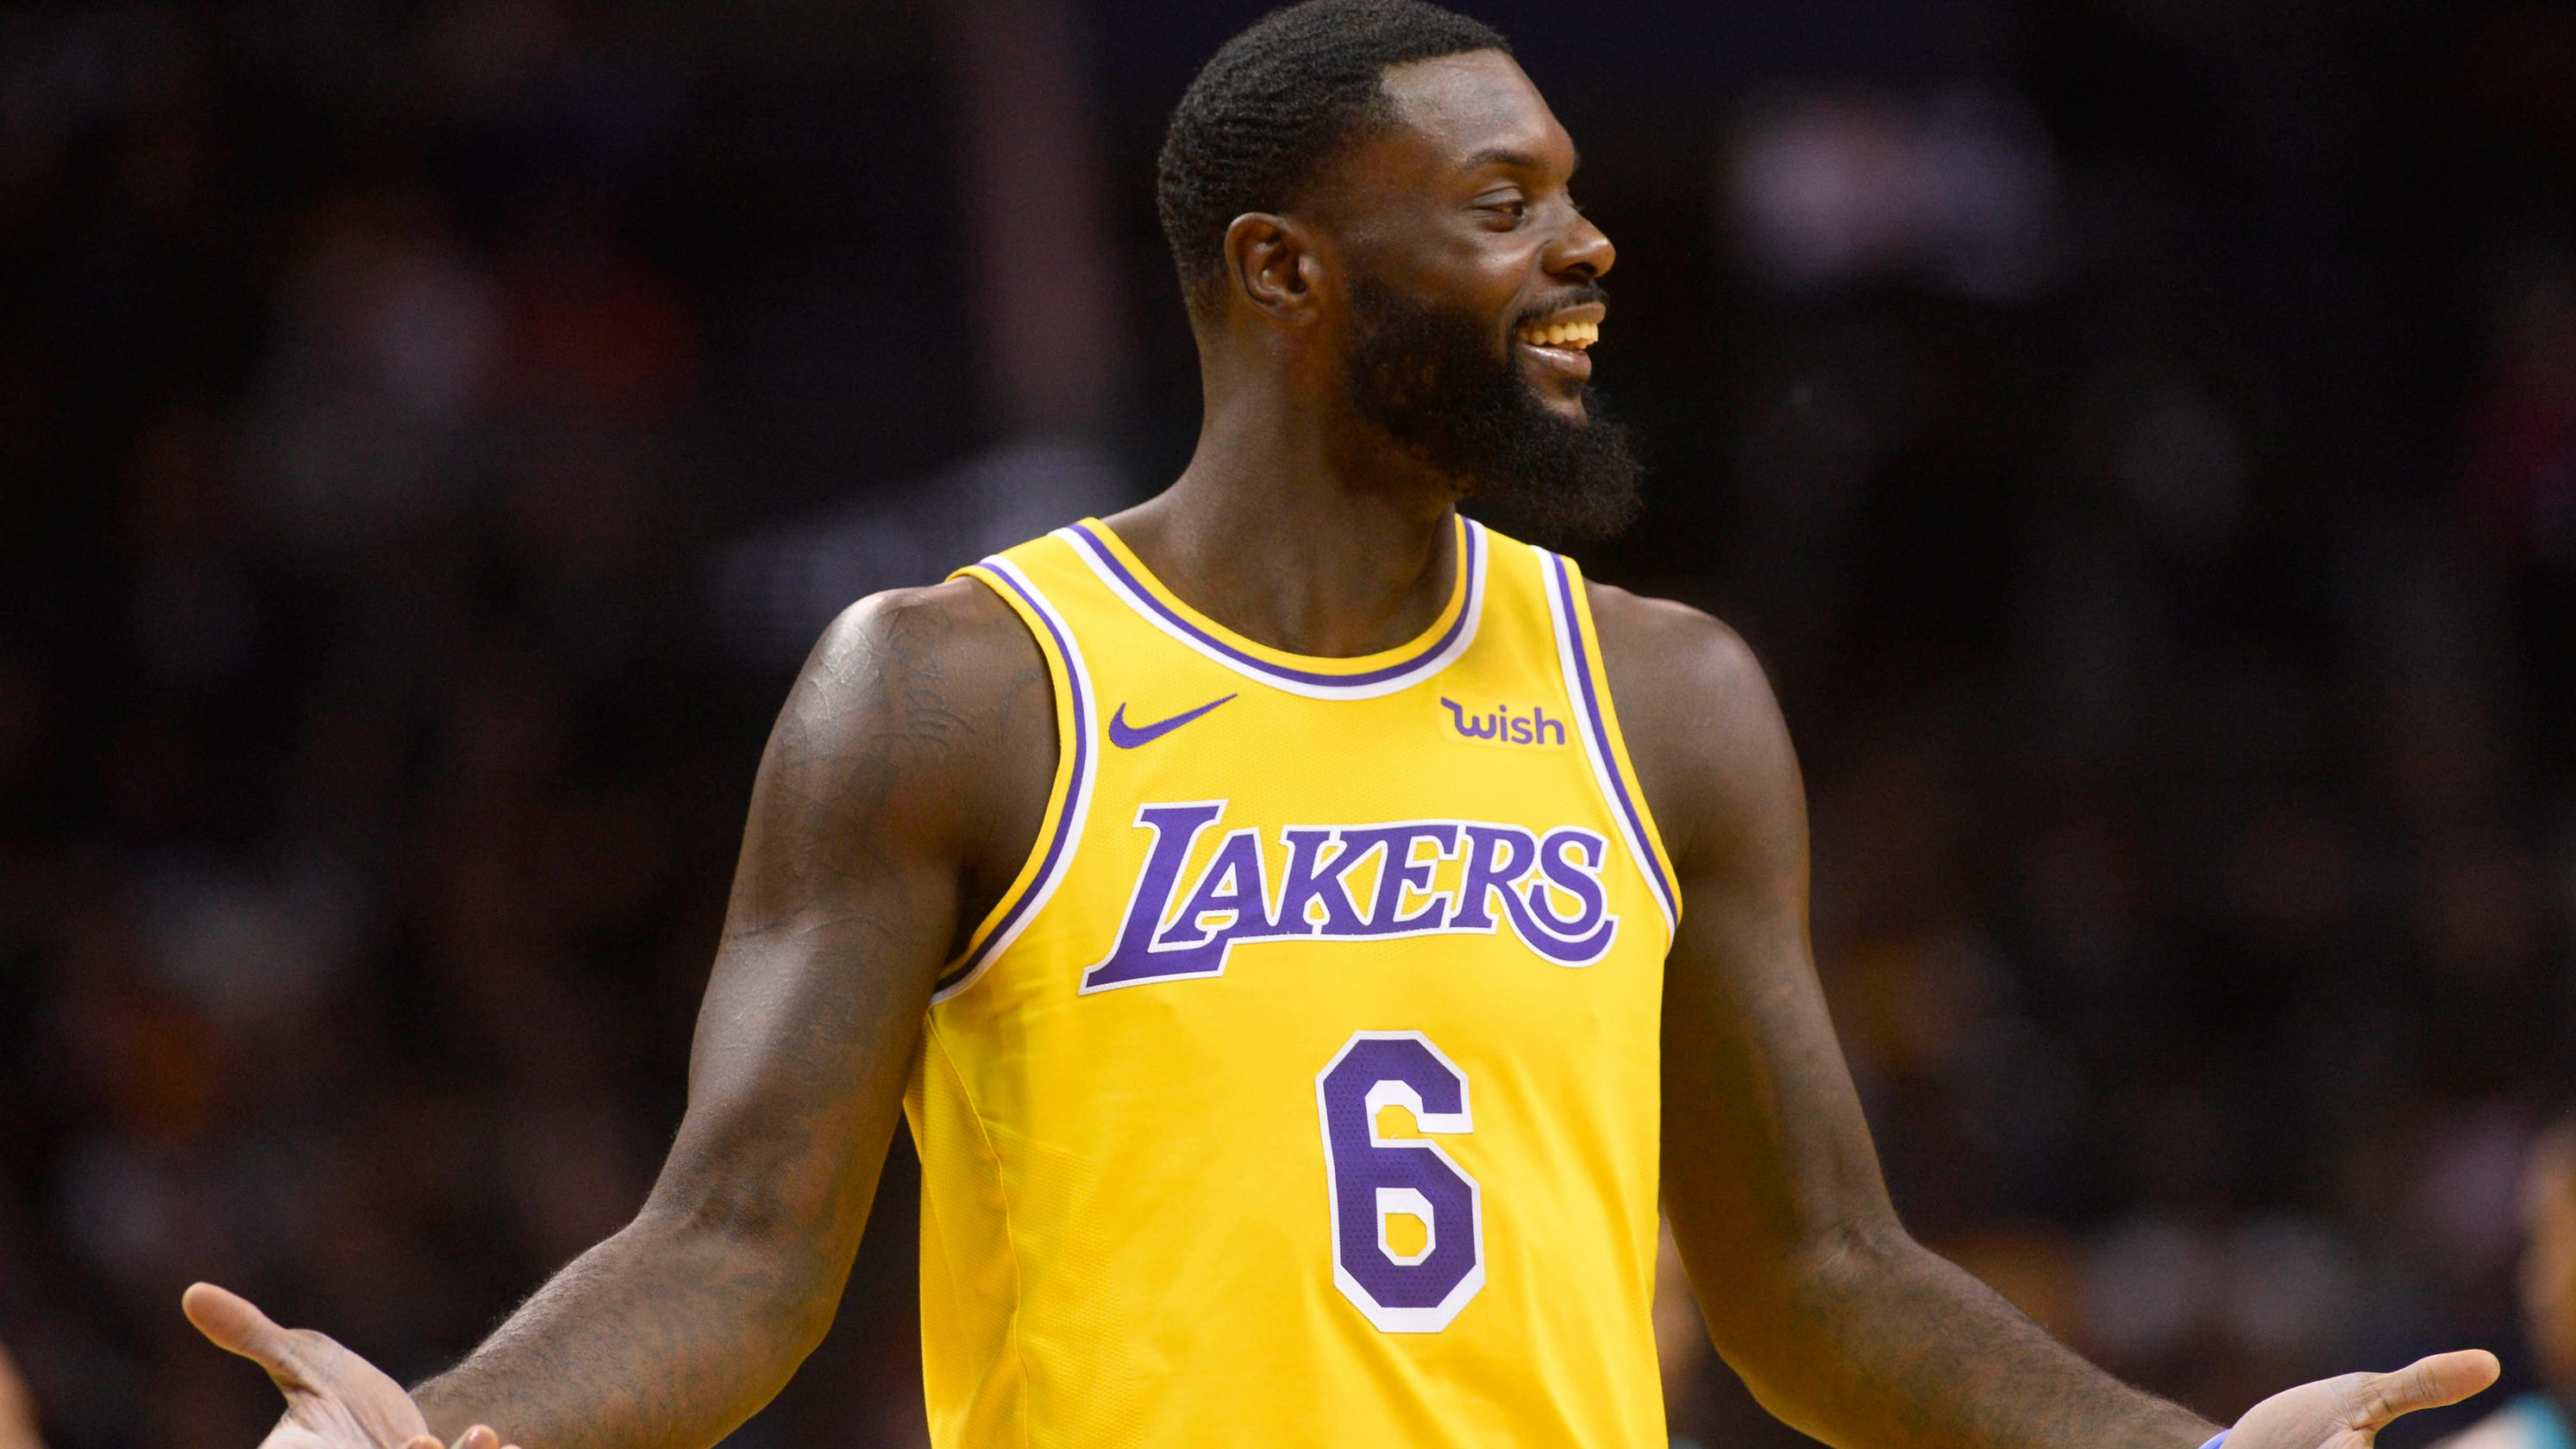 fbb4264fd1f Lakers  Lance Stephenson gets technical foul for playing air guitar